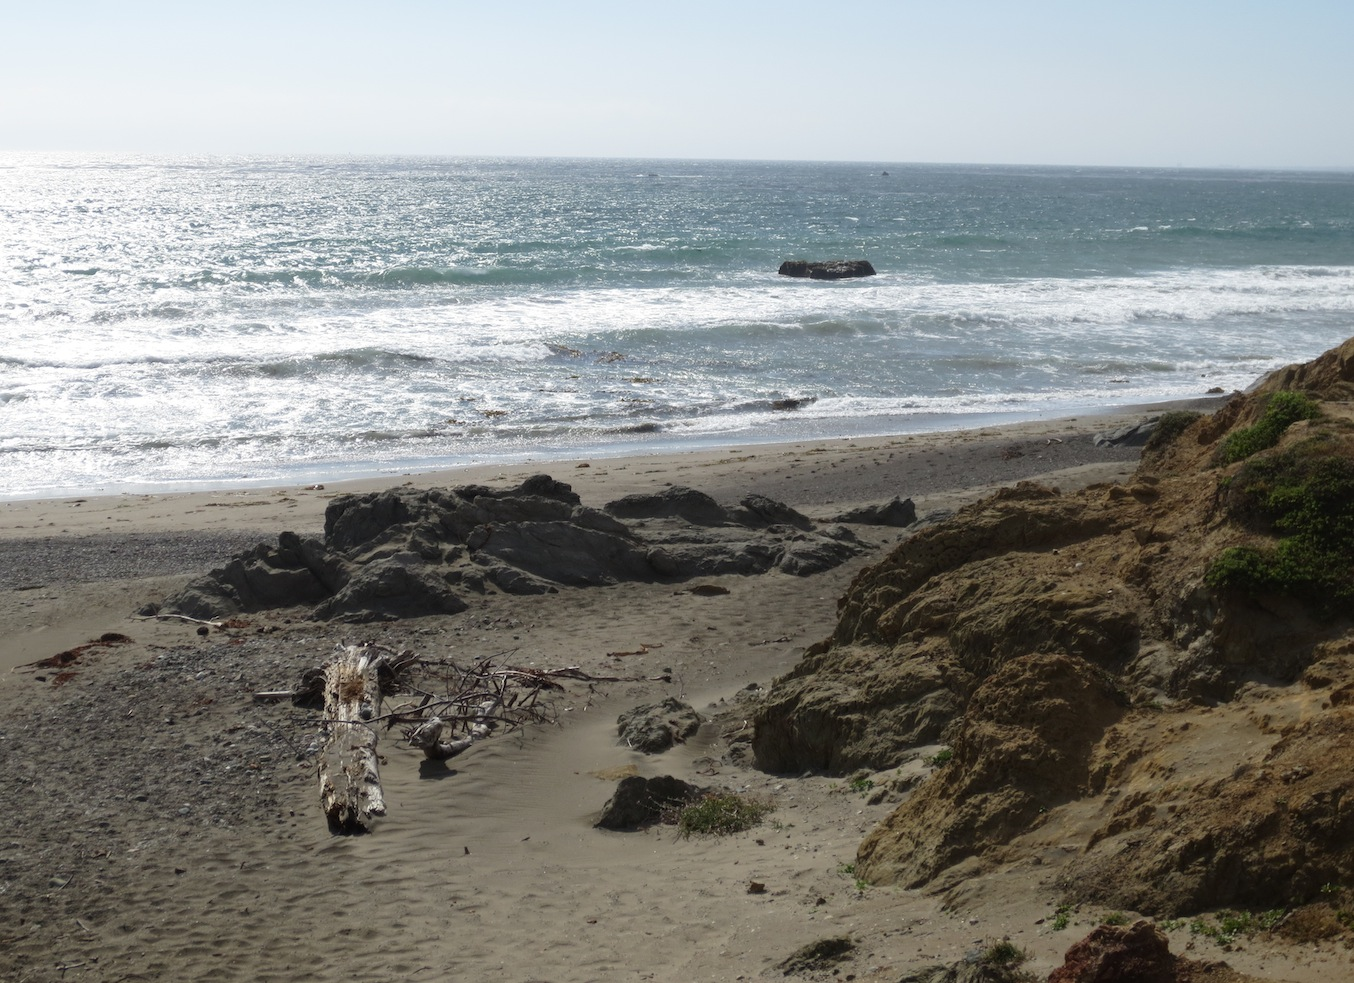 A shot of the beach on the Pacific coastline in California